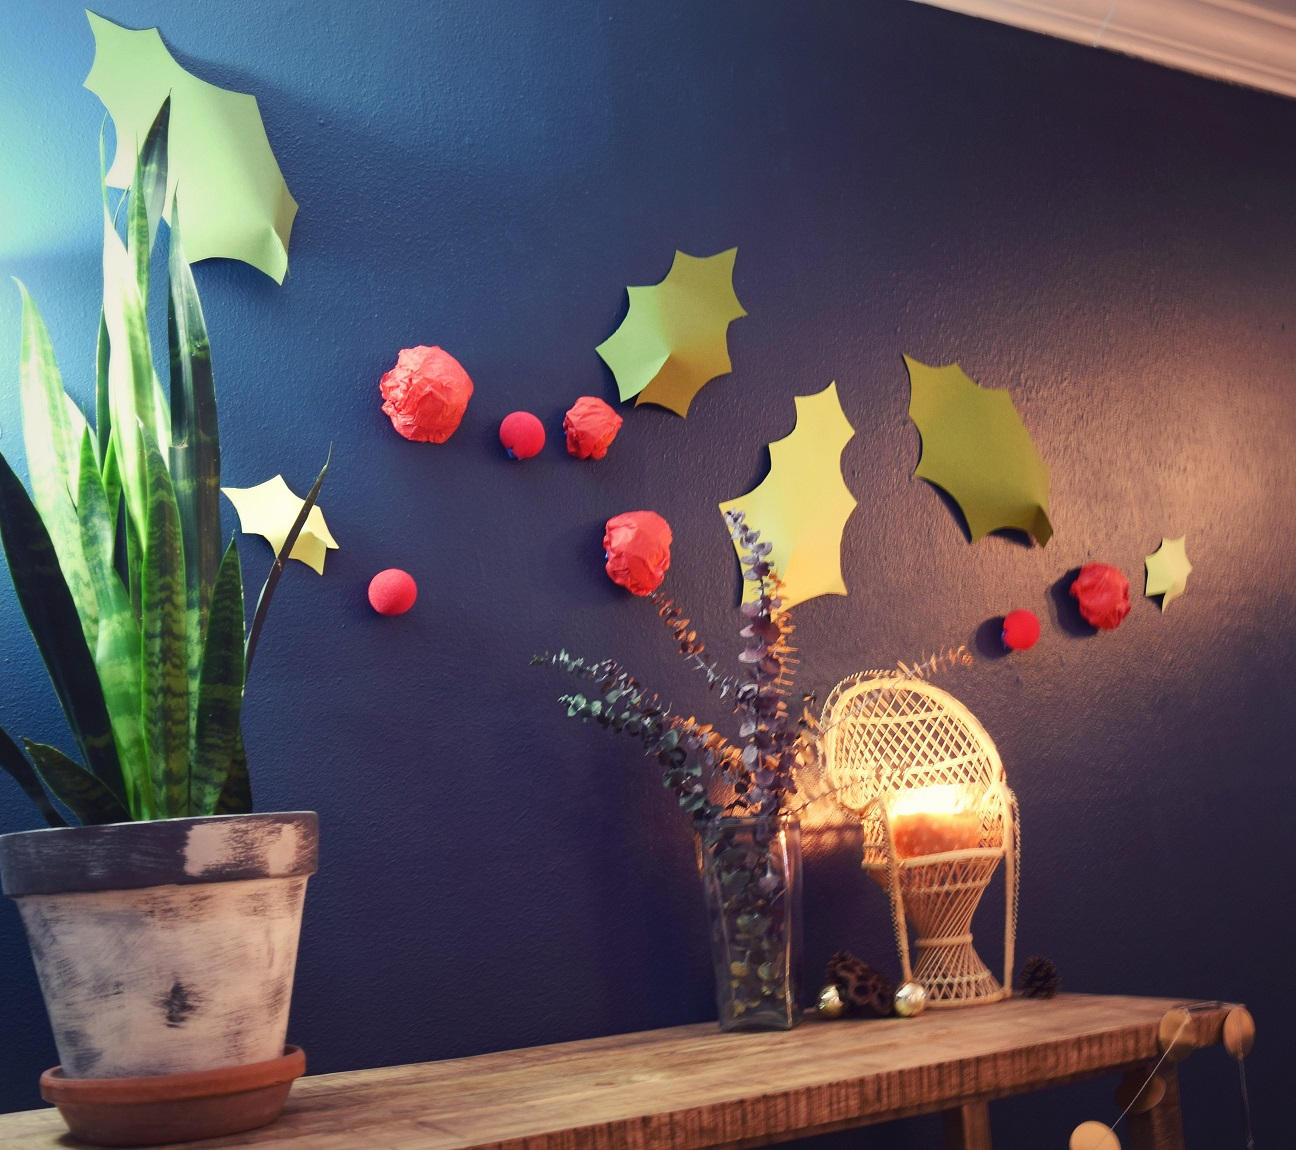 diy festive holiday 3D wall decor idea